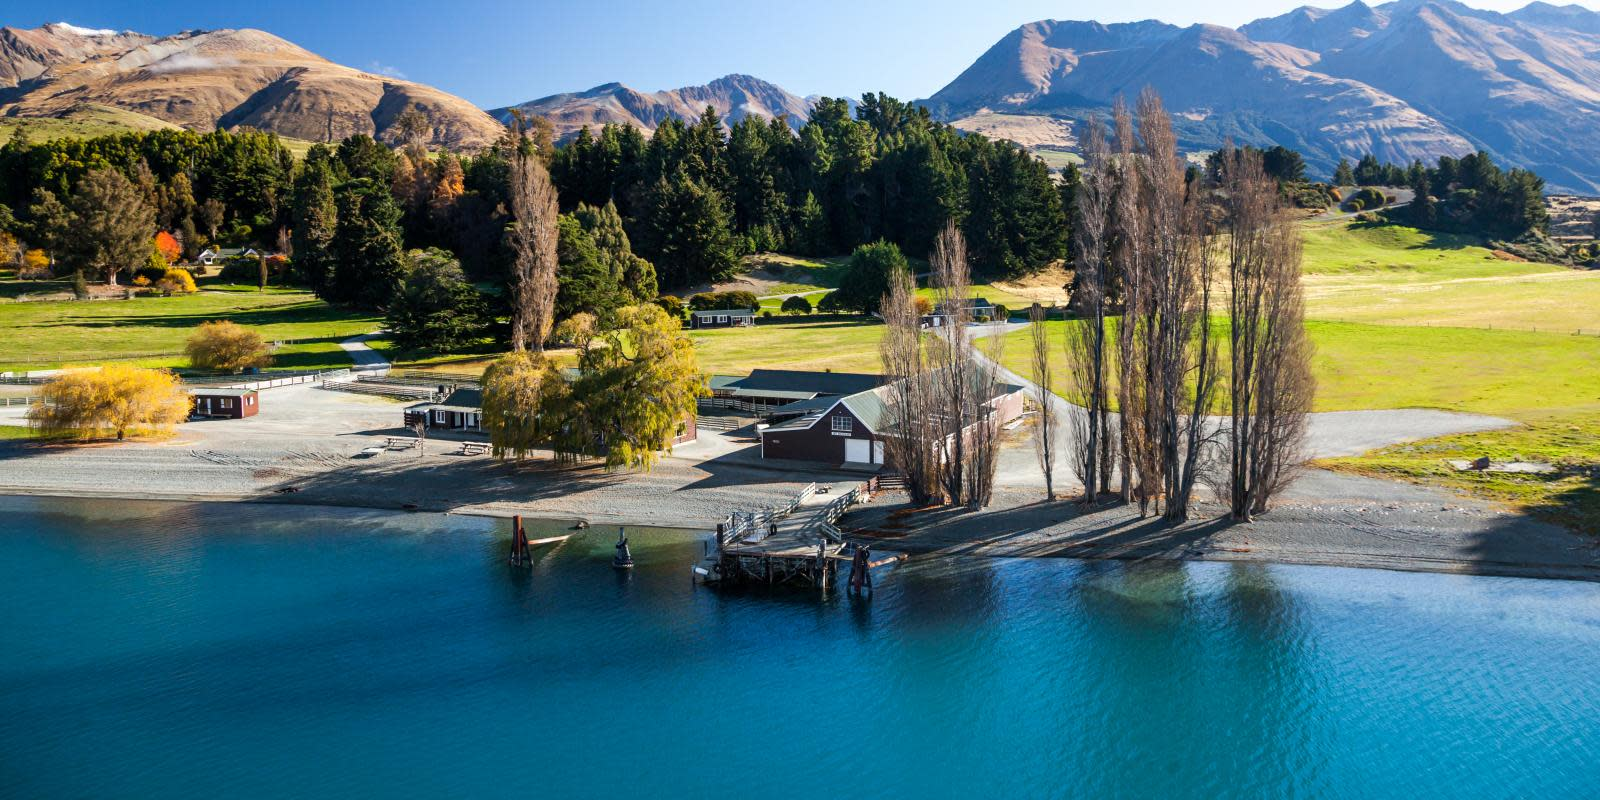 Mt Nicholas Station in Queenstown